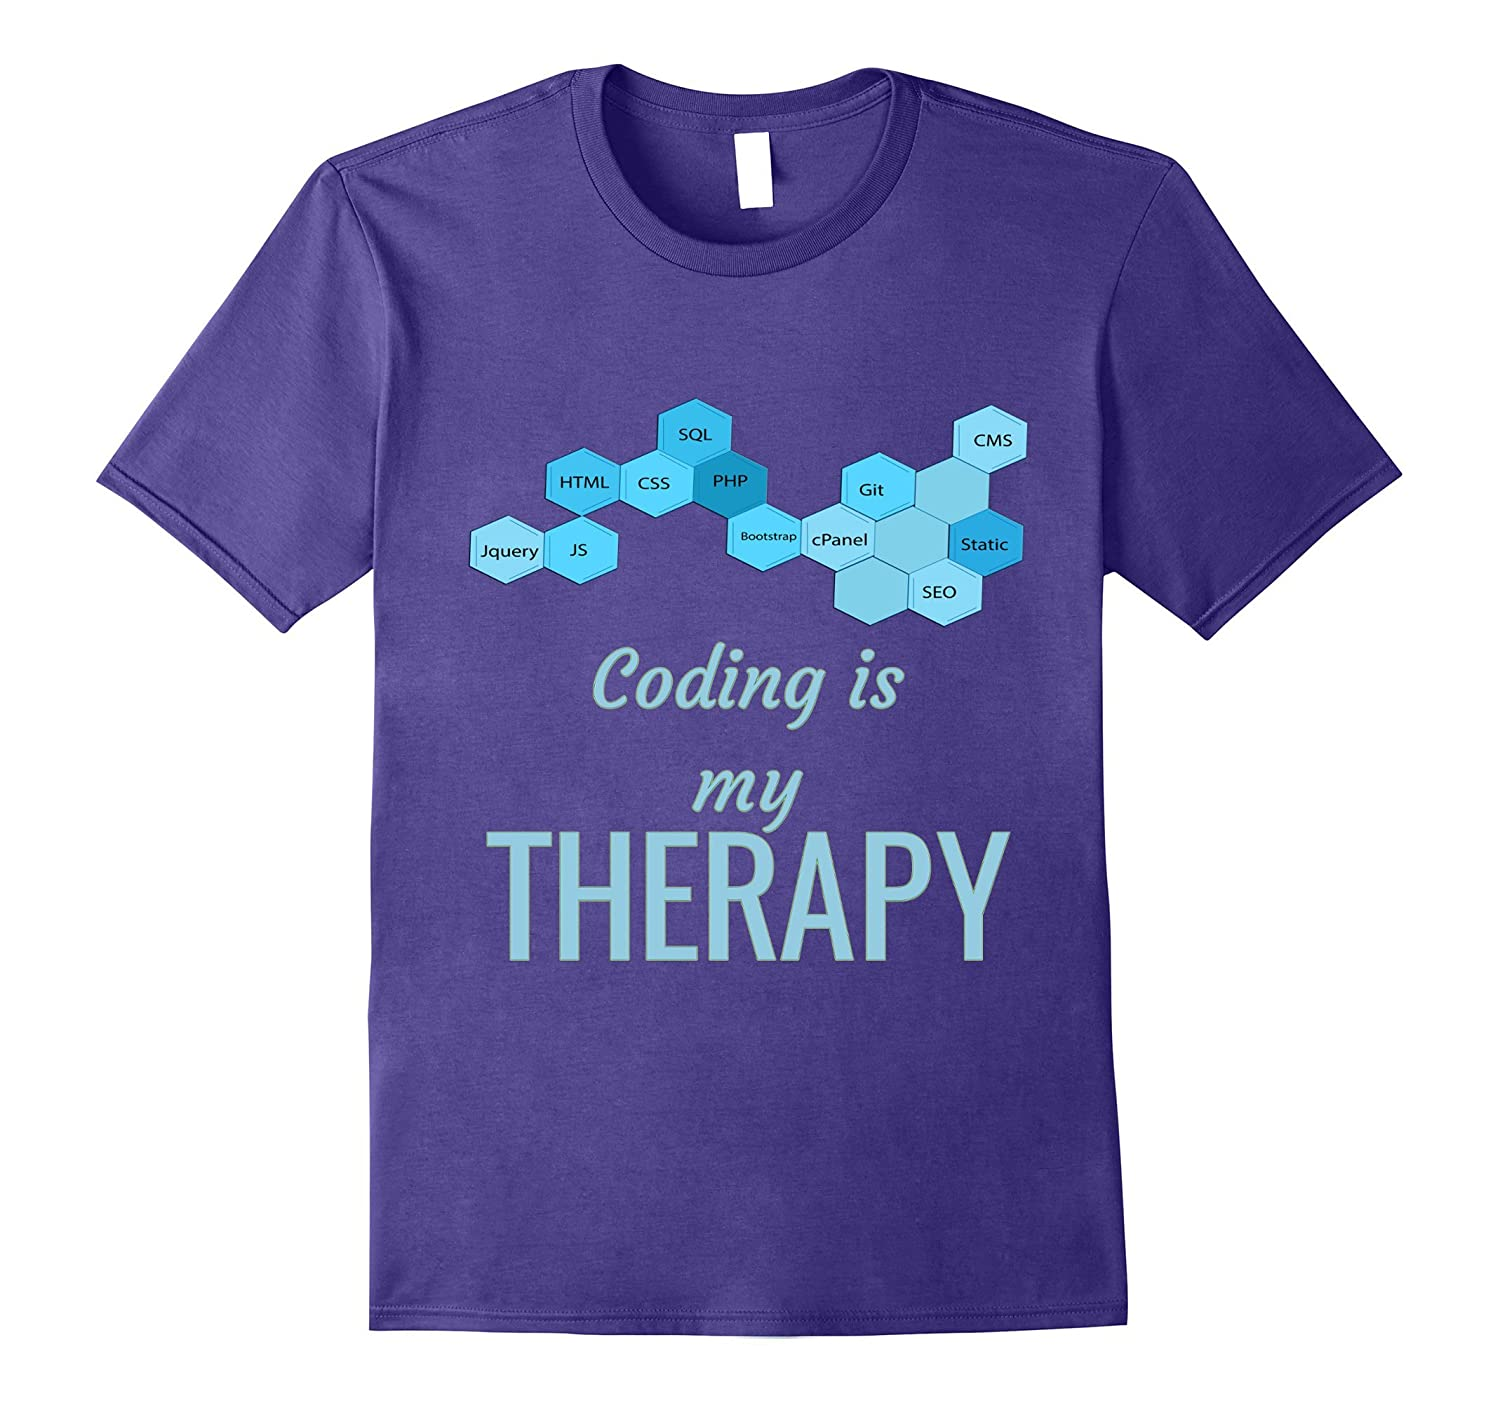 Coding is my therapy - Great shirt for software developers-TJ